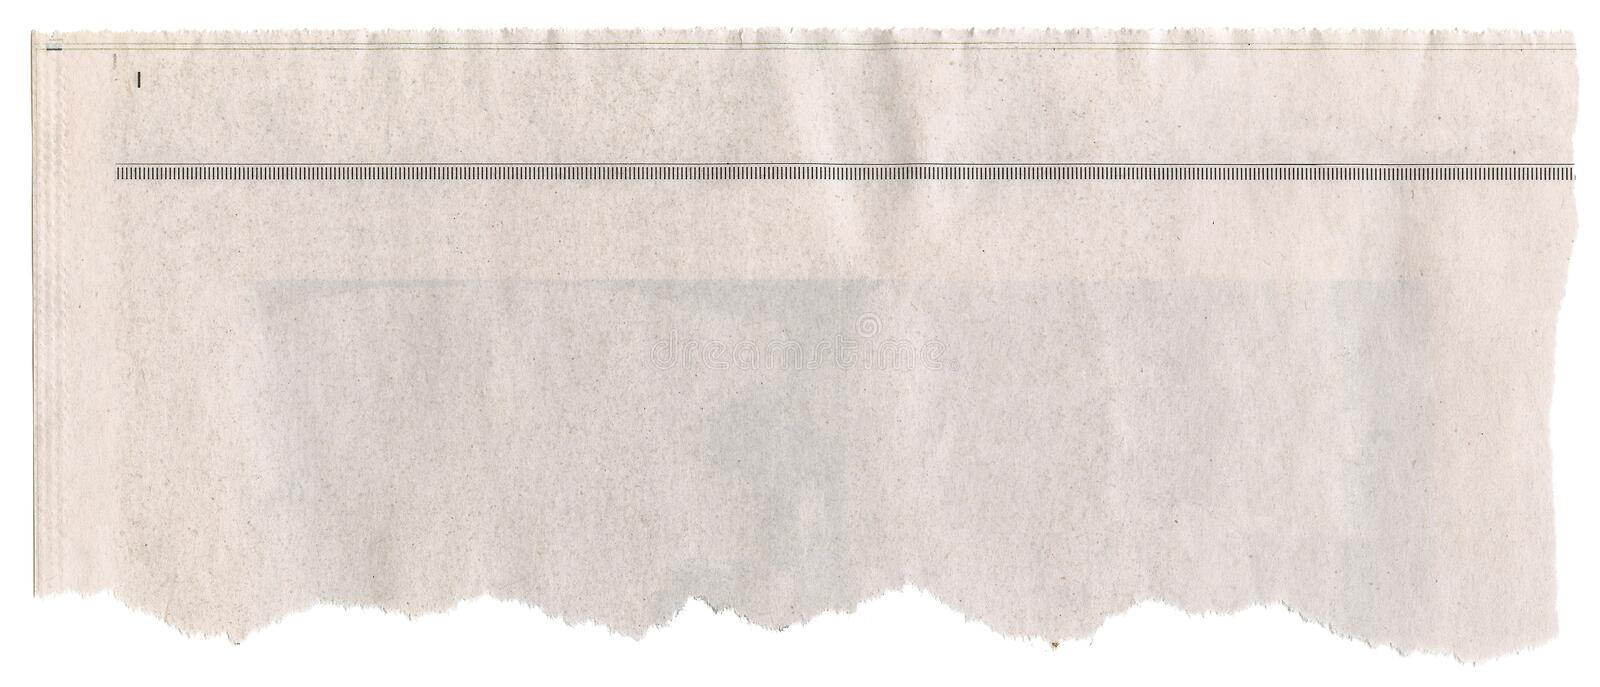 Download Newspaper Headline stock image. Image of message, crumpled - 5738785